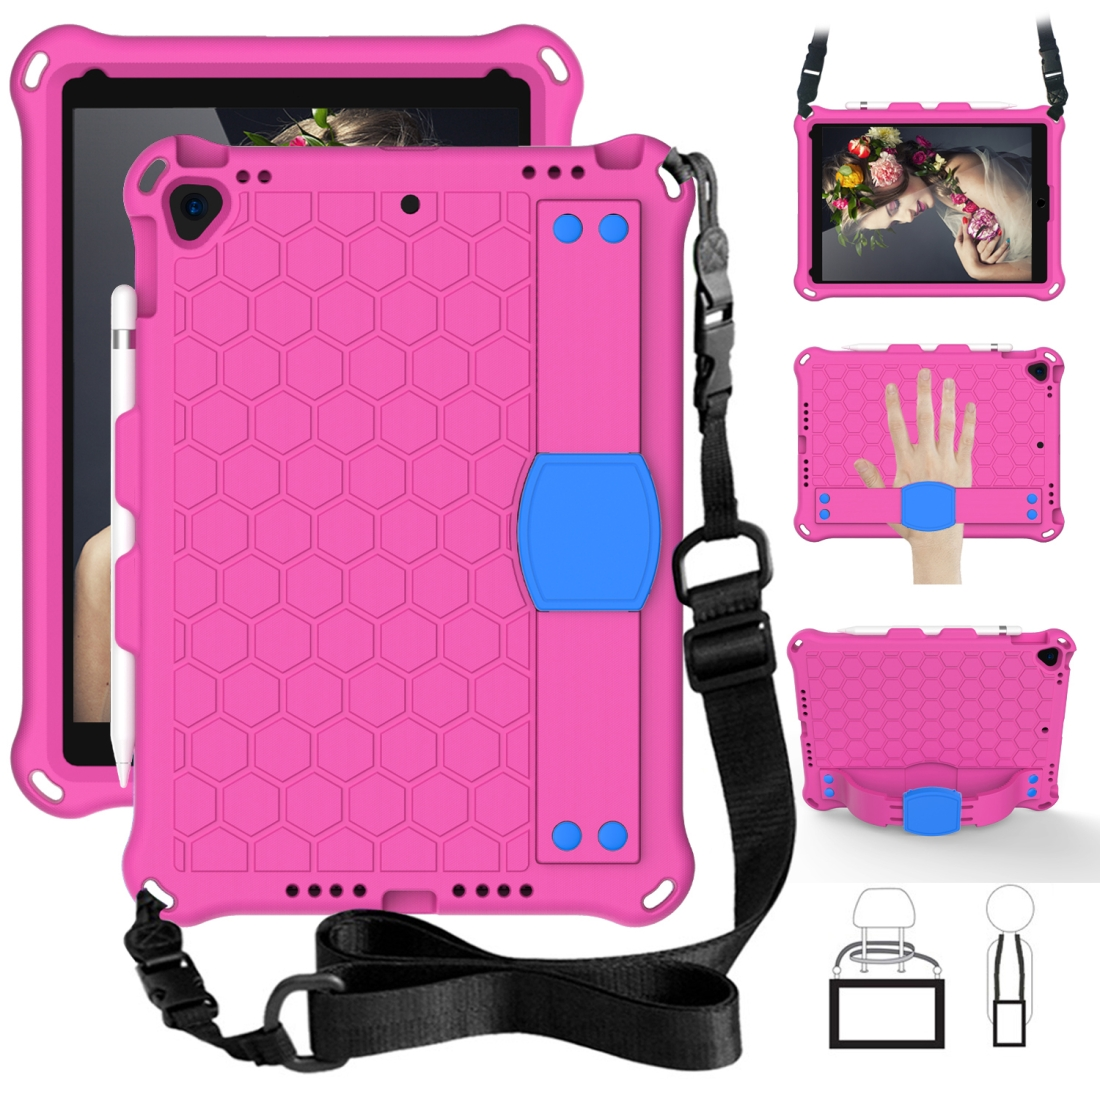 iPad 7th Generation Case (10.2 Inch) Honeycomb Design Shockproof Protective Case (Rose Red)